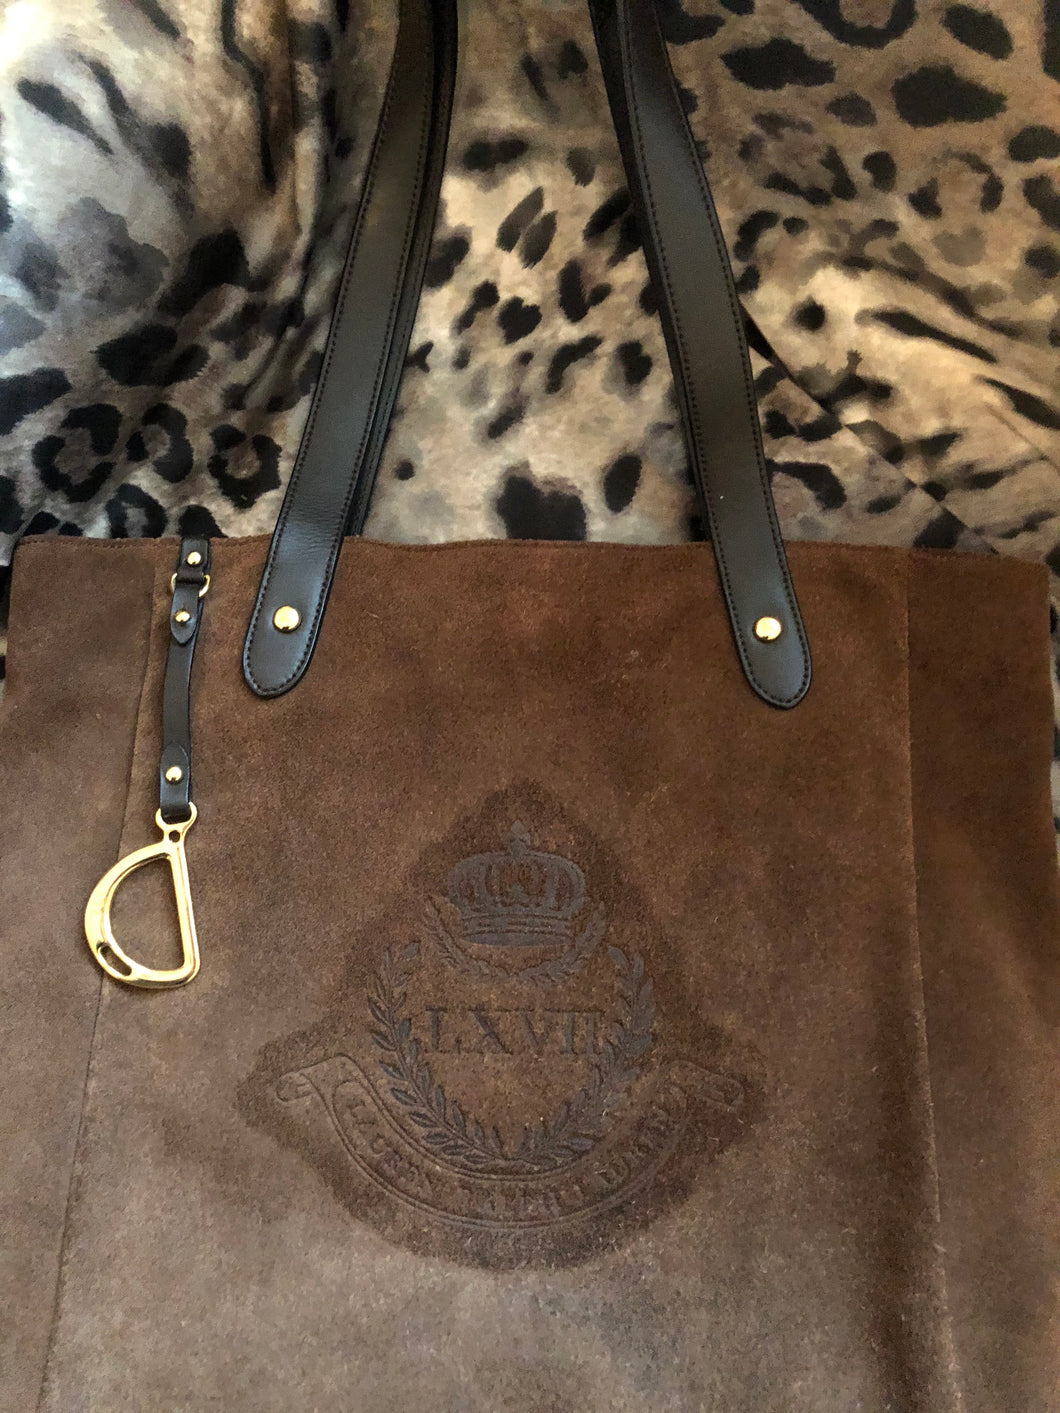 consignment bag - Ralph Lauren tote, brown suede